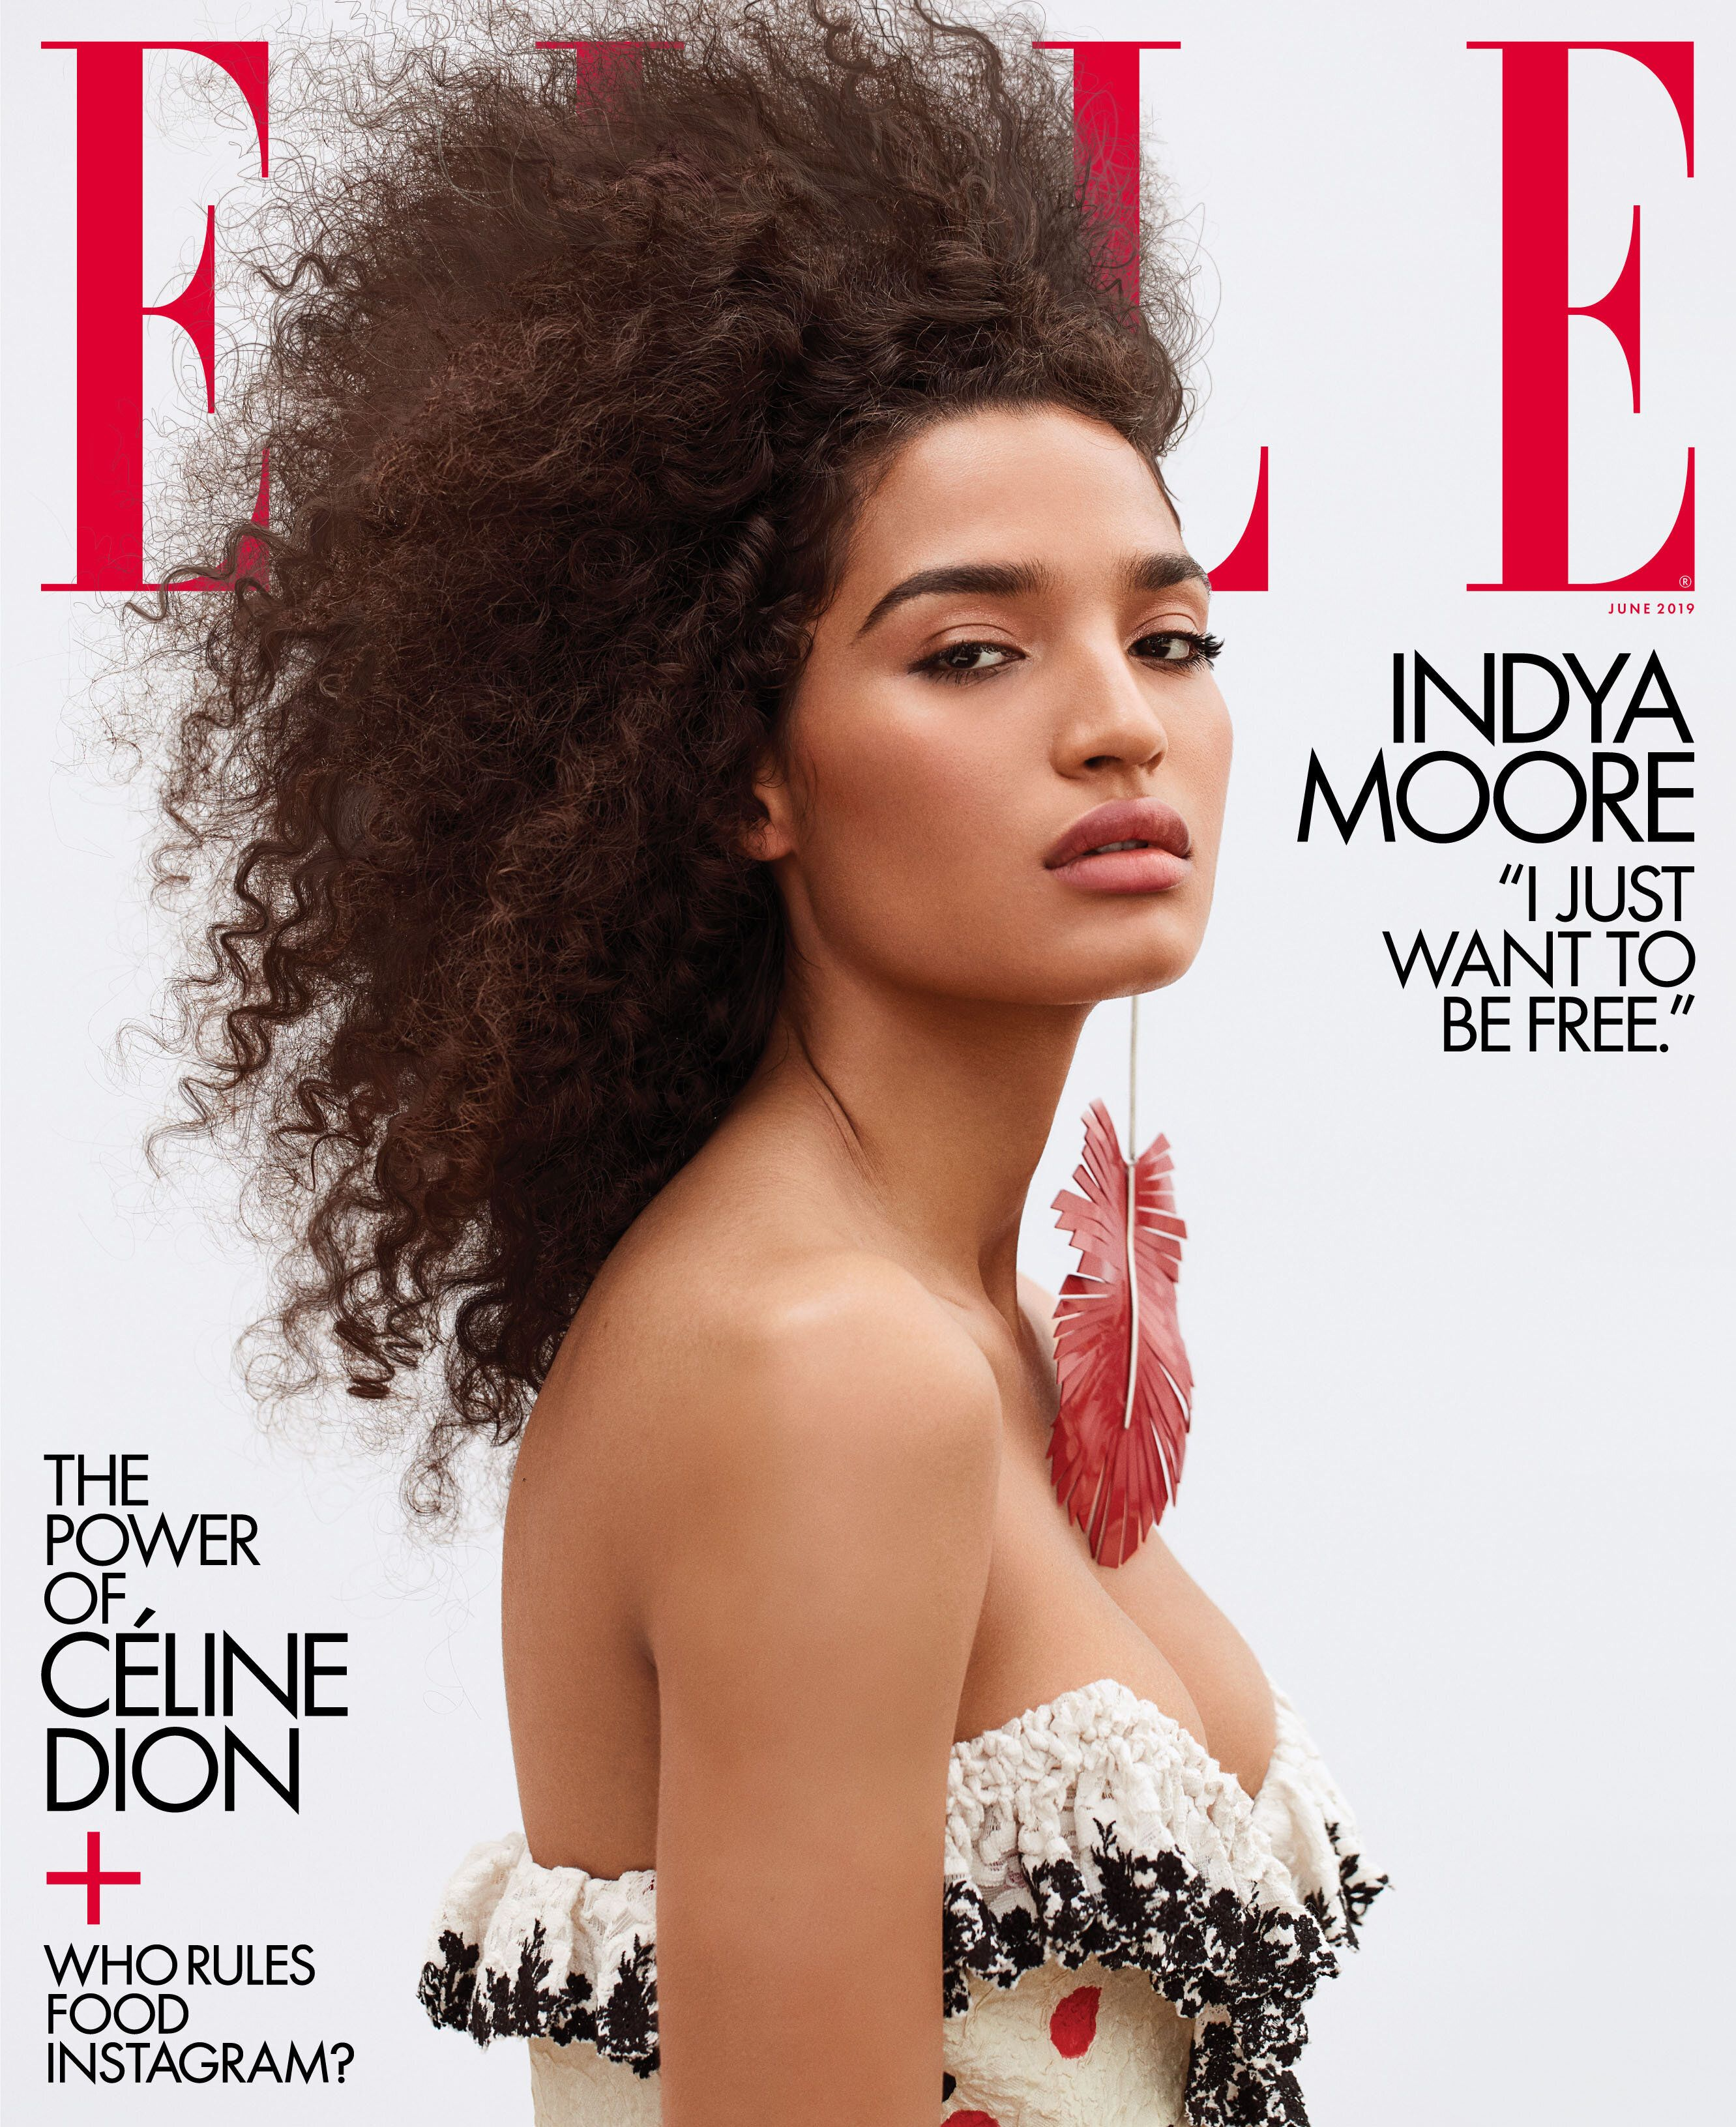 Indya Moore, who plays Angel on FX's